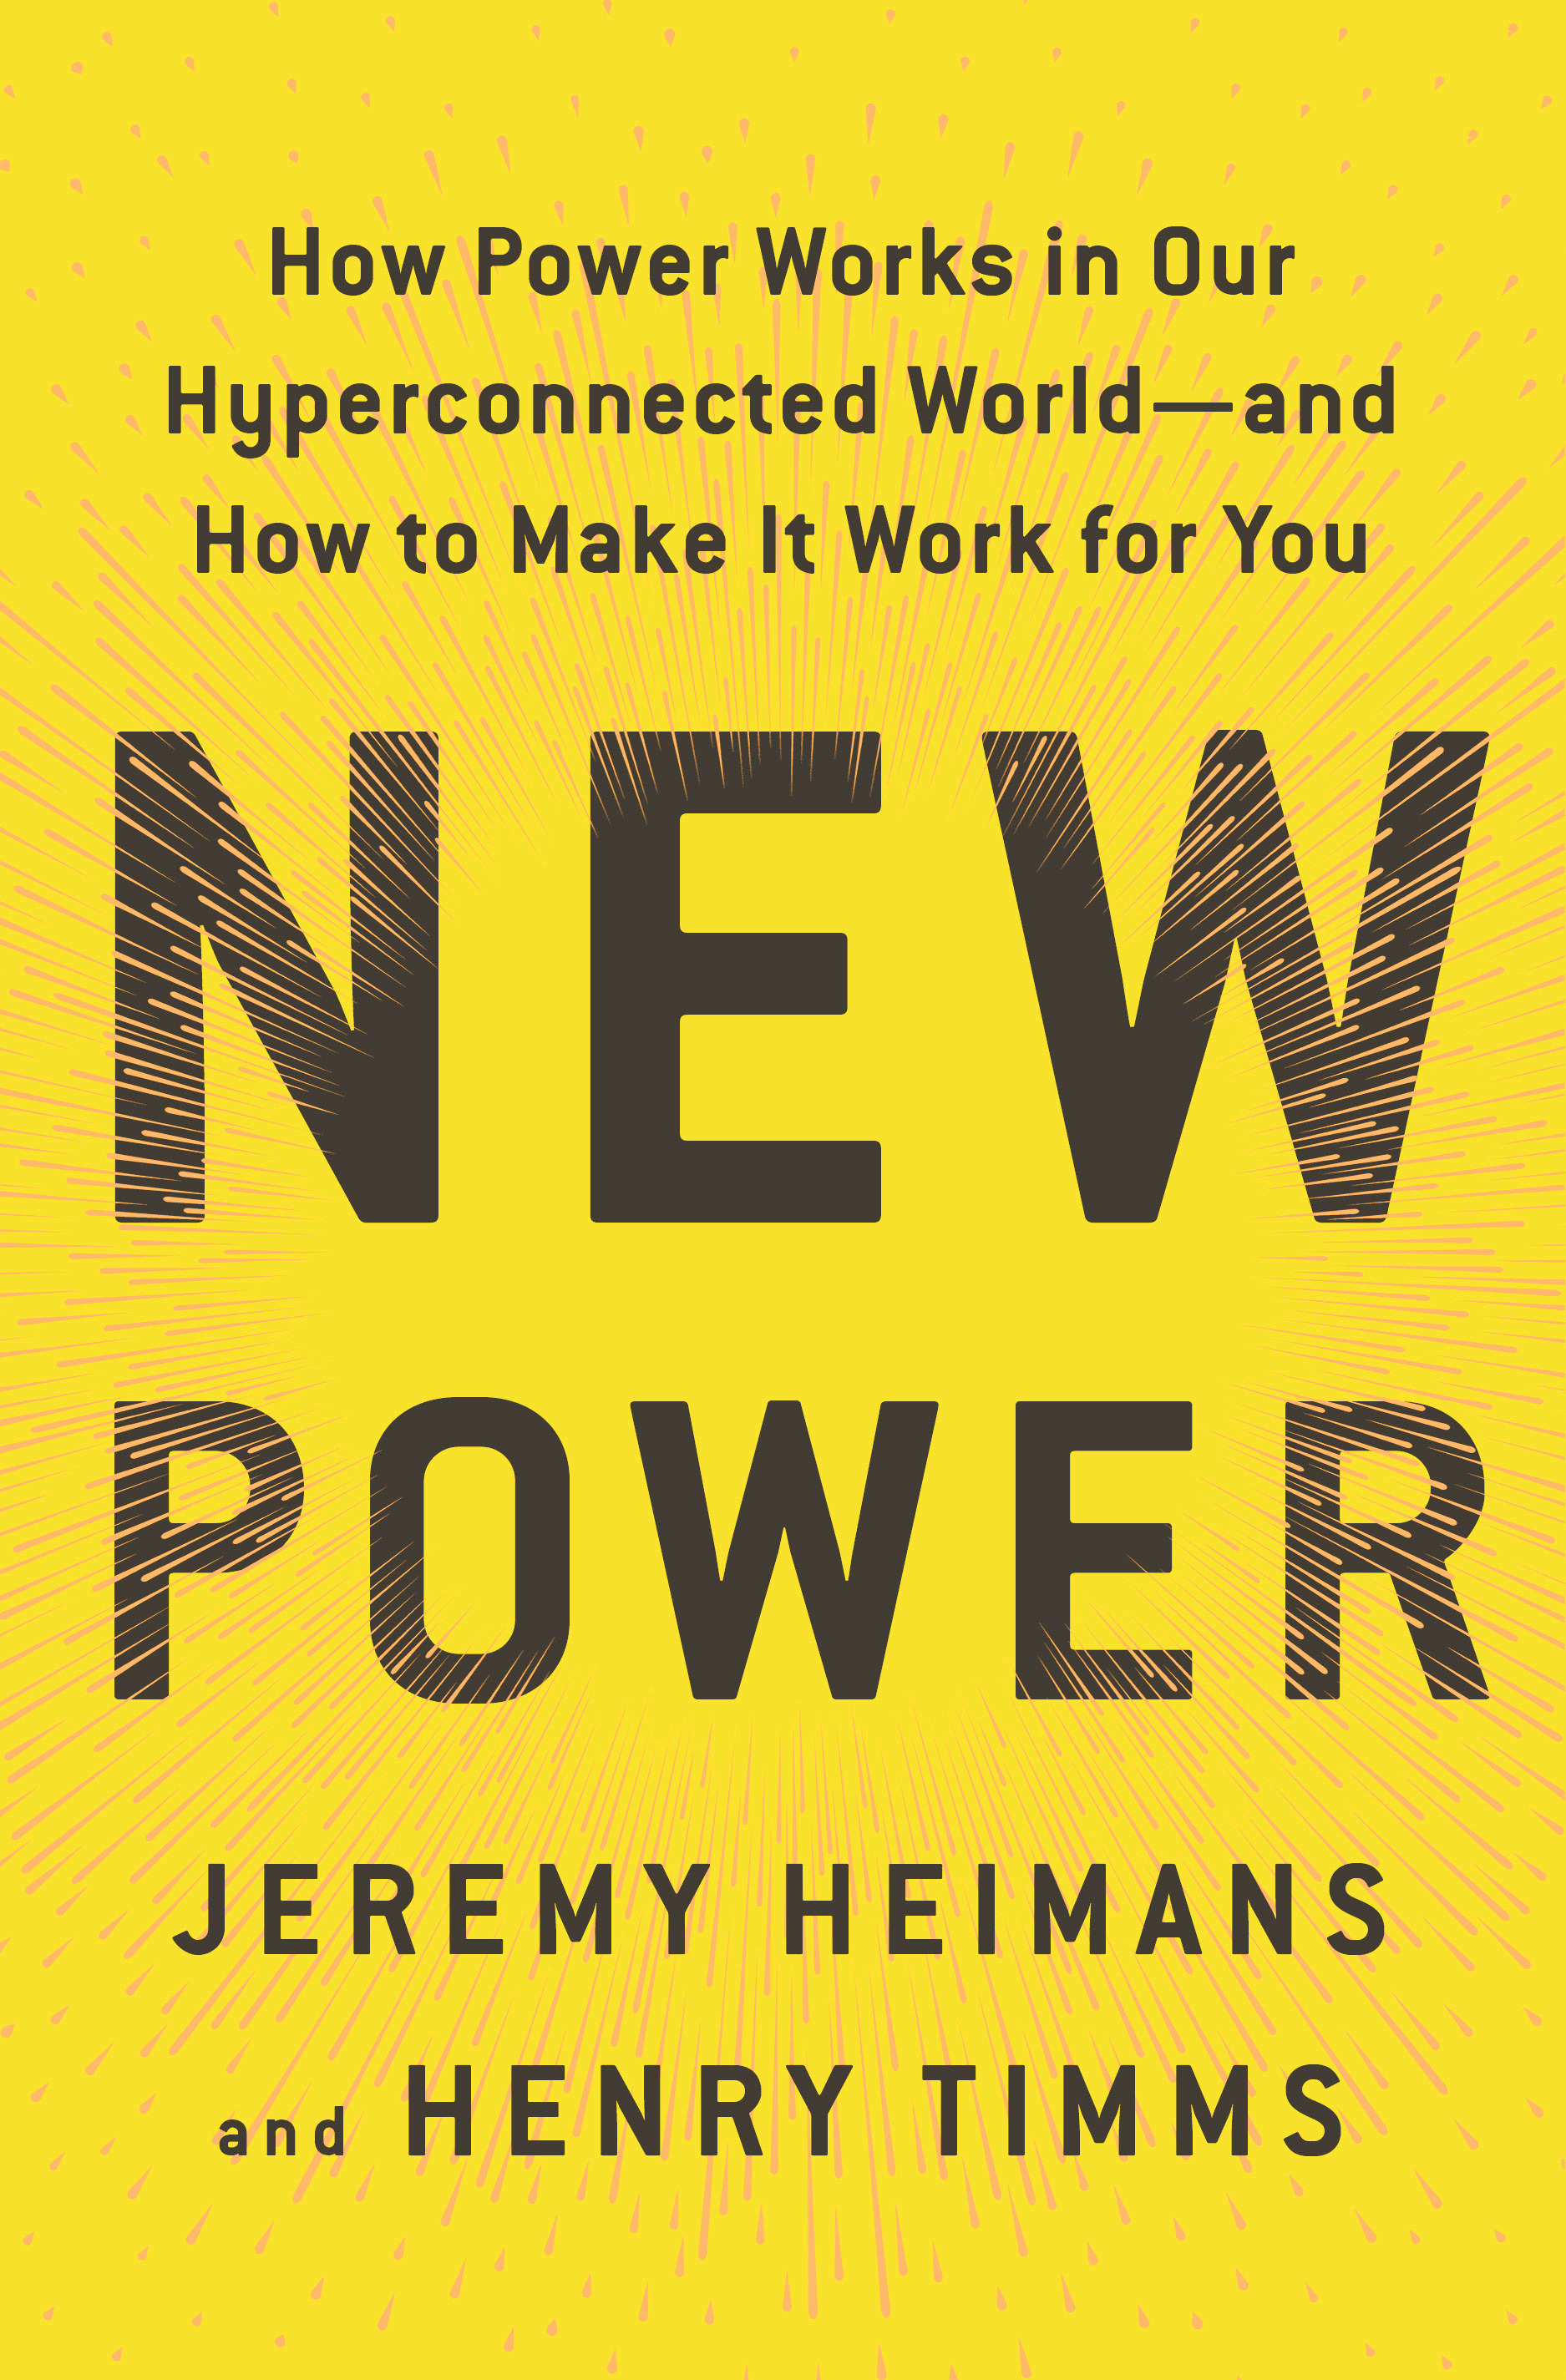 New Power: How Power Works in Our Hyperconnected World—and How to Make It Work for You